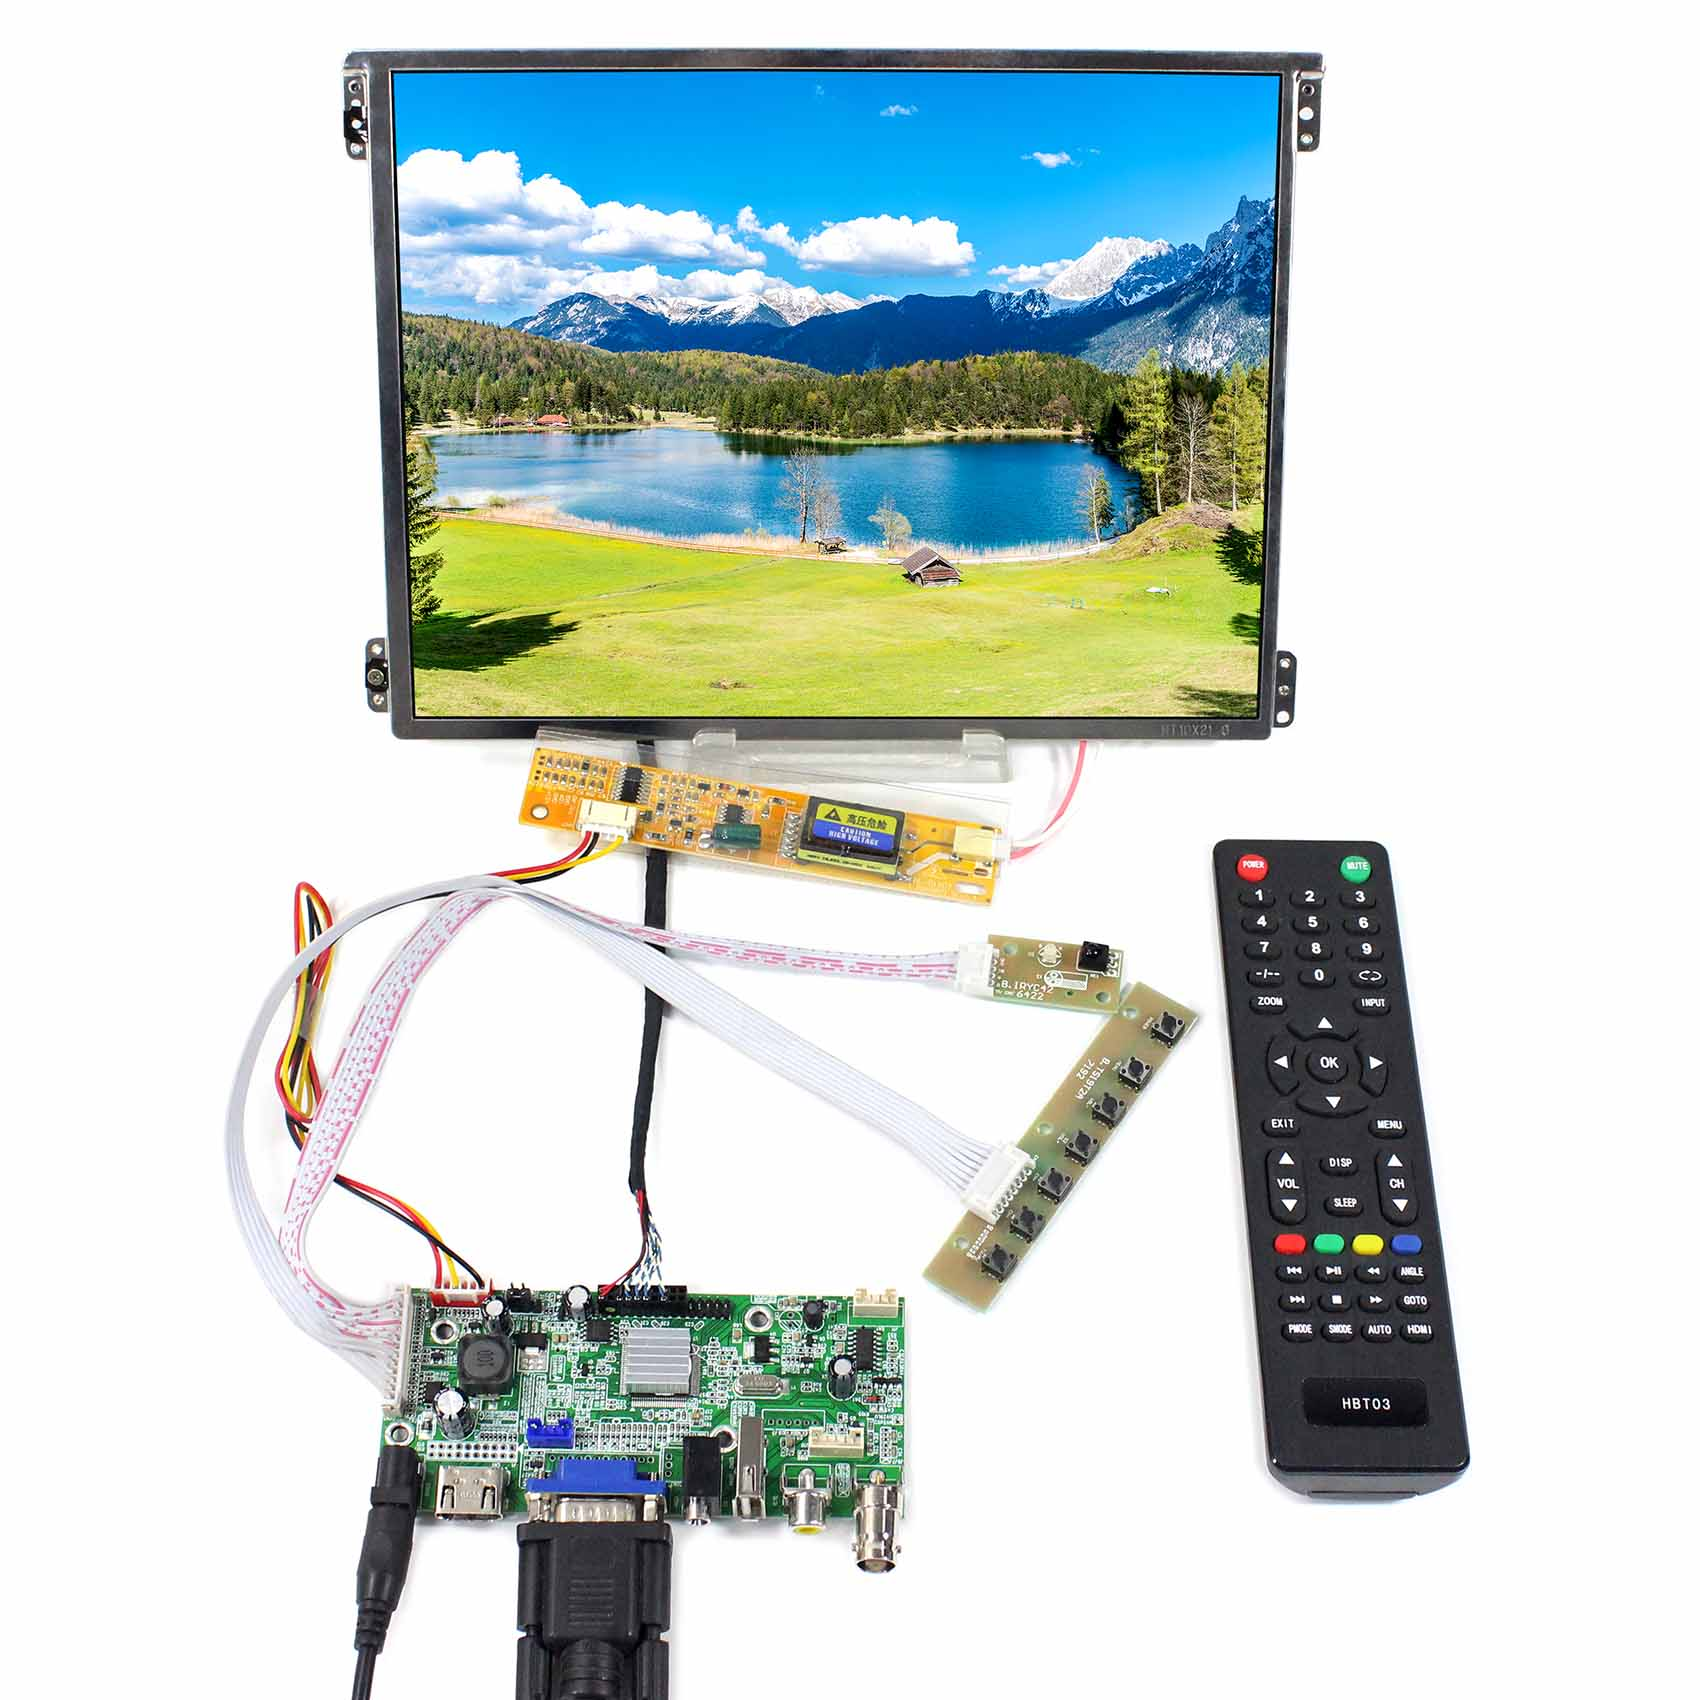 HDMI VGA 2AV USB LCD Board Work for 10.4 1024X768 LCD Screen HT10X21-311 HDMI VGA 2AV USB LCD Board Work for 10.4 1024X768 LCD Screen HT10X21-311